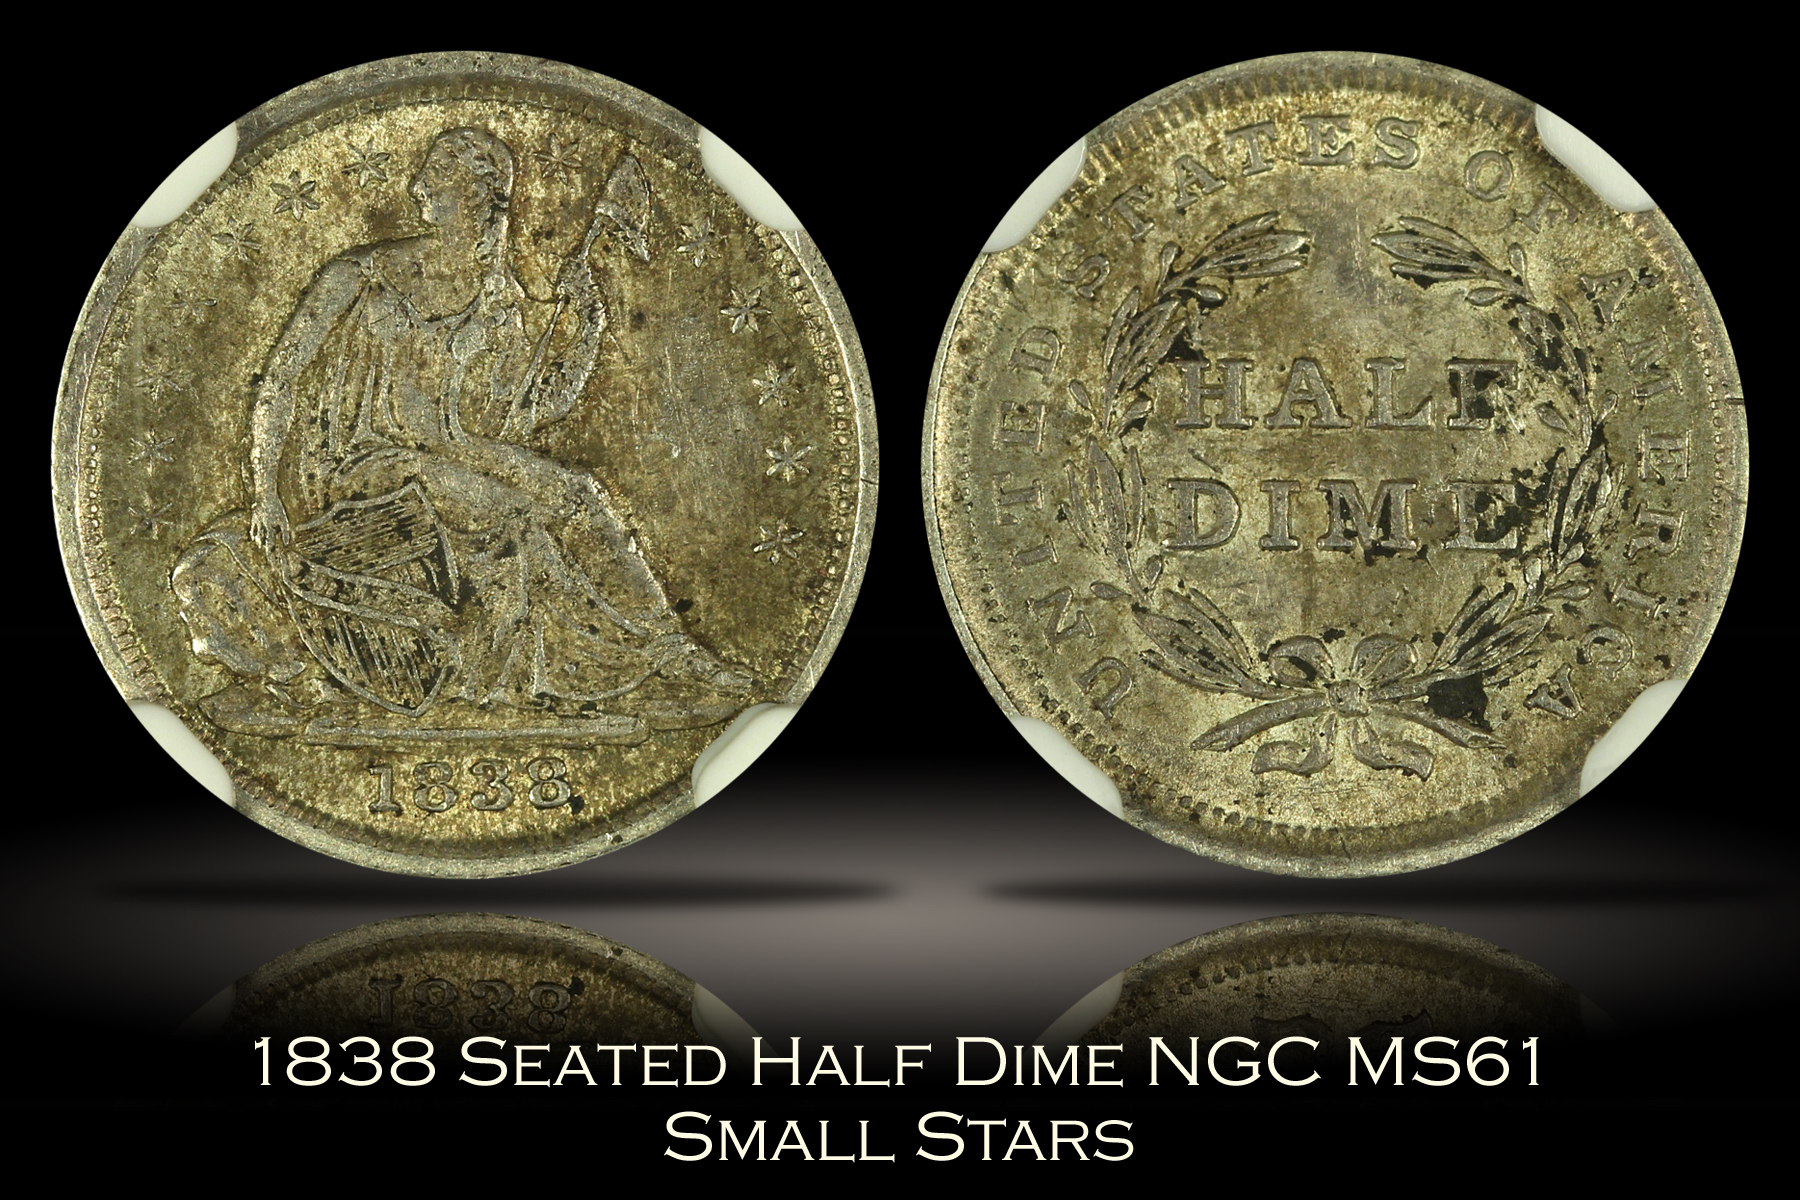 1838 Small Stars Seated Half Dime NGC MS61